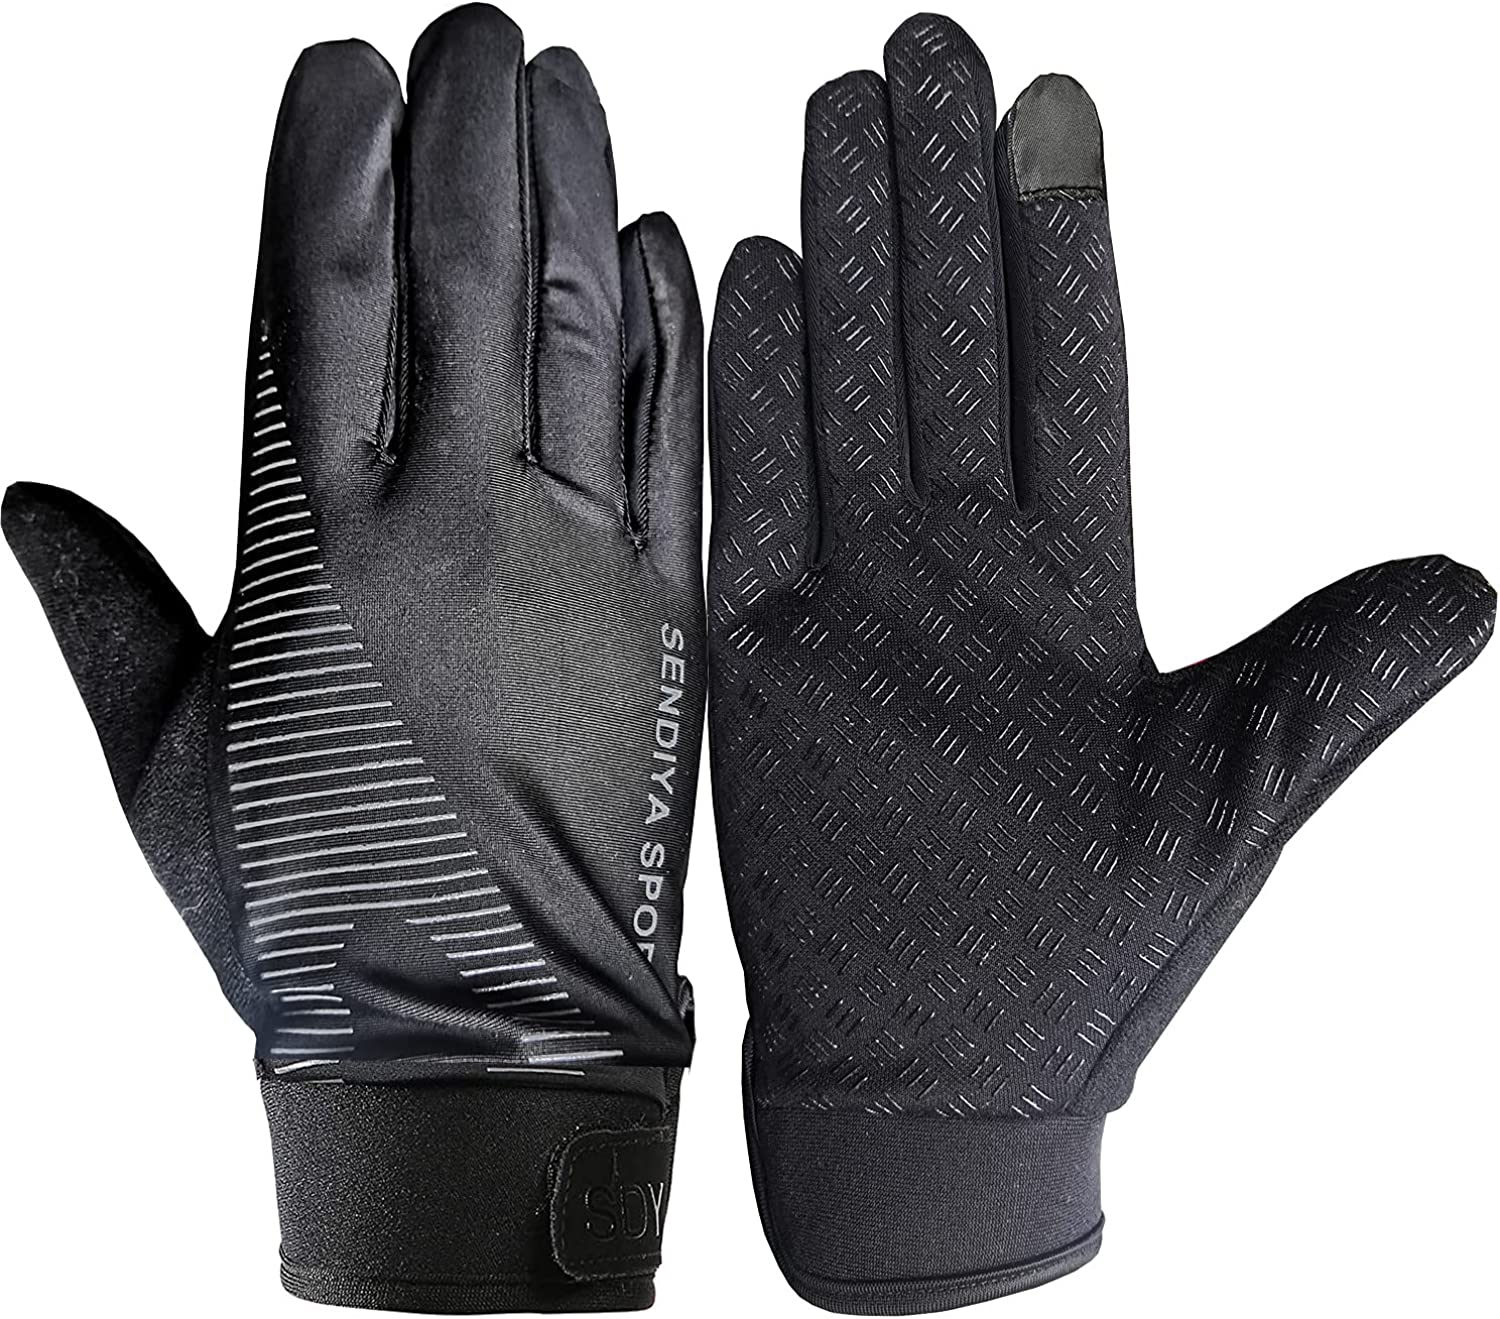 Full Finger Gloves for Men Women Texting Workout Exercise Gloves Driving in Summer Touch Screen Gloves Cycling